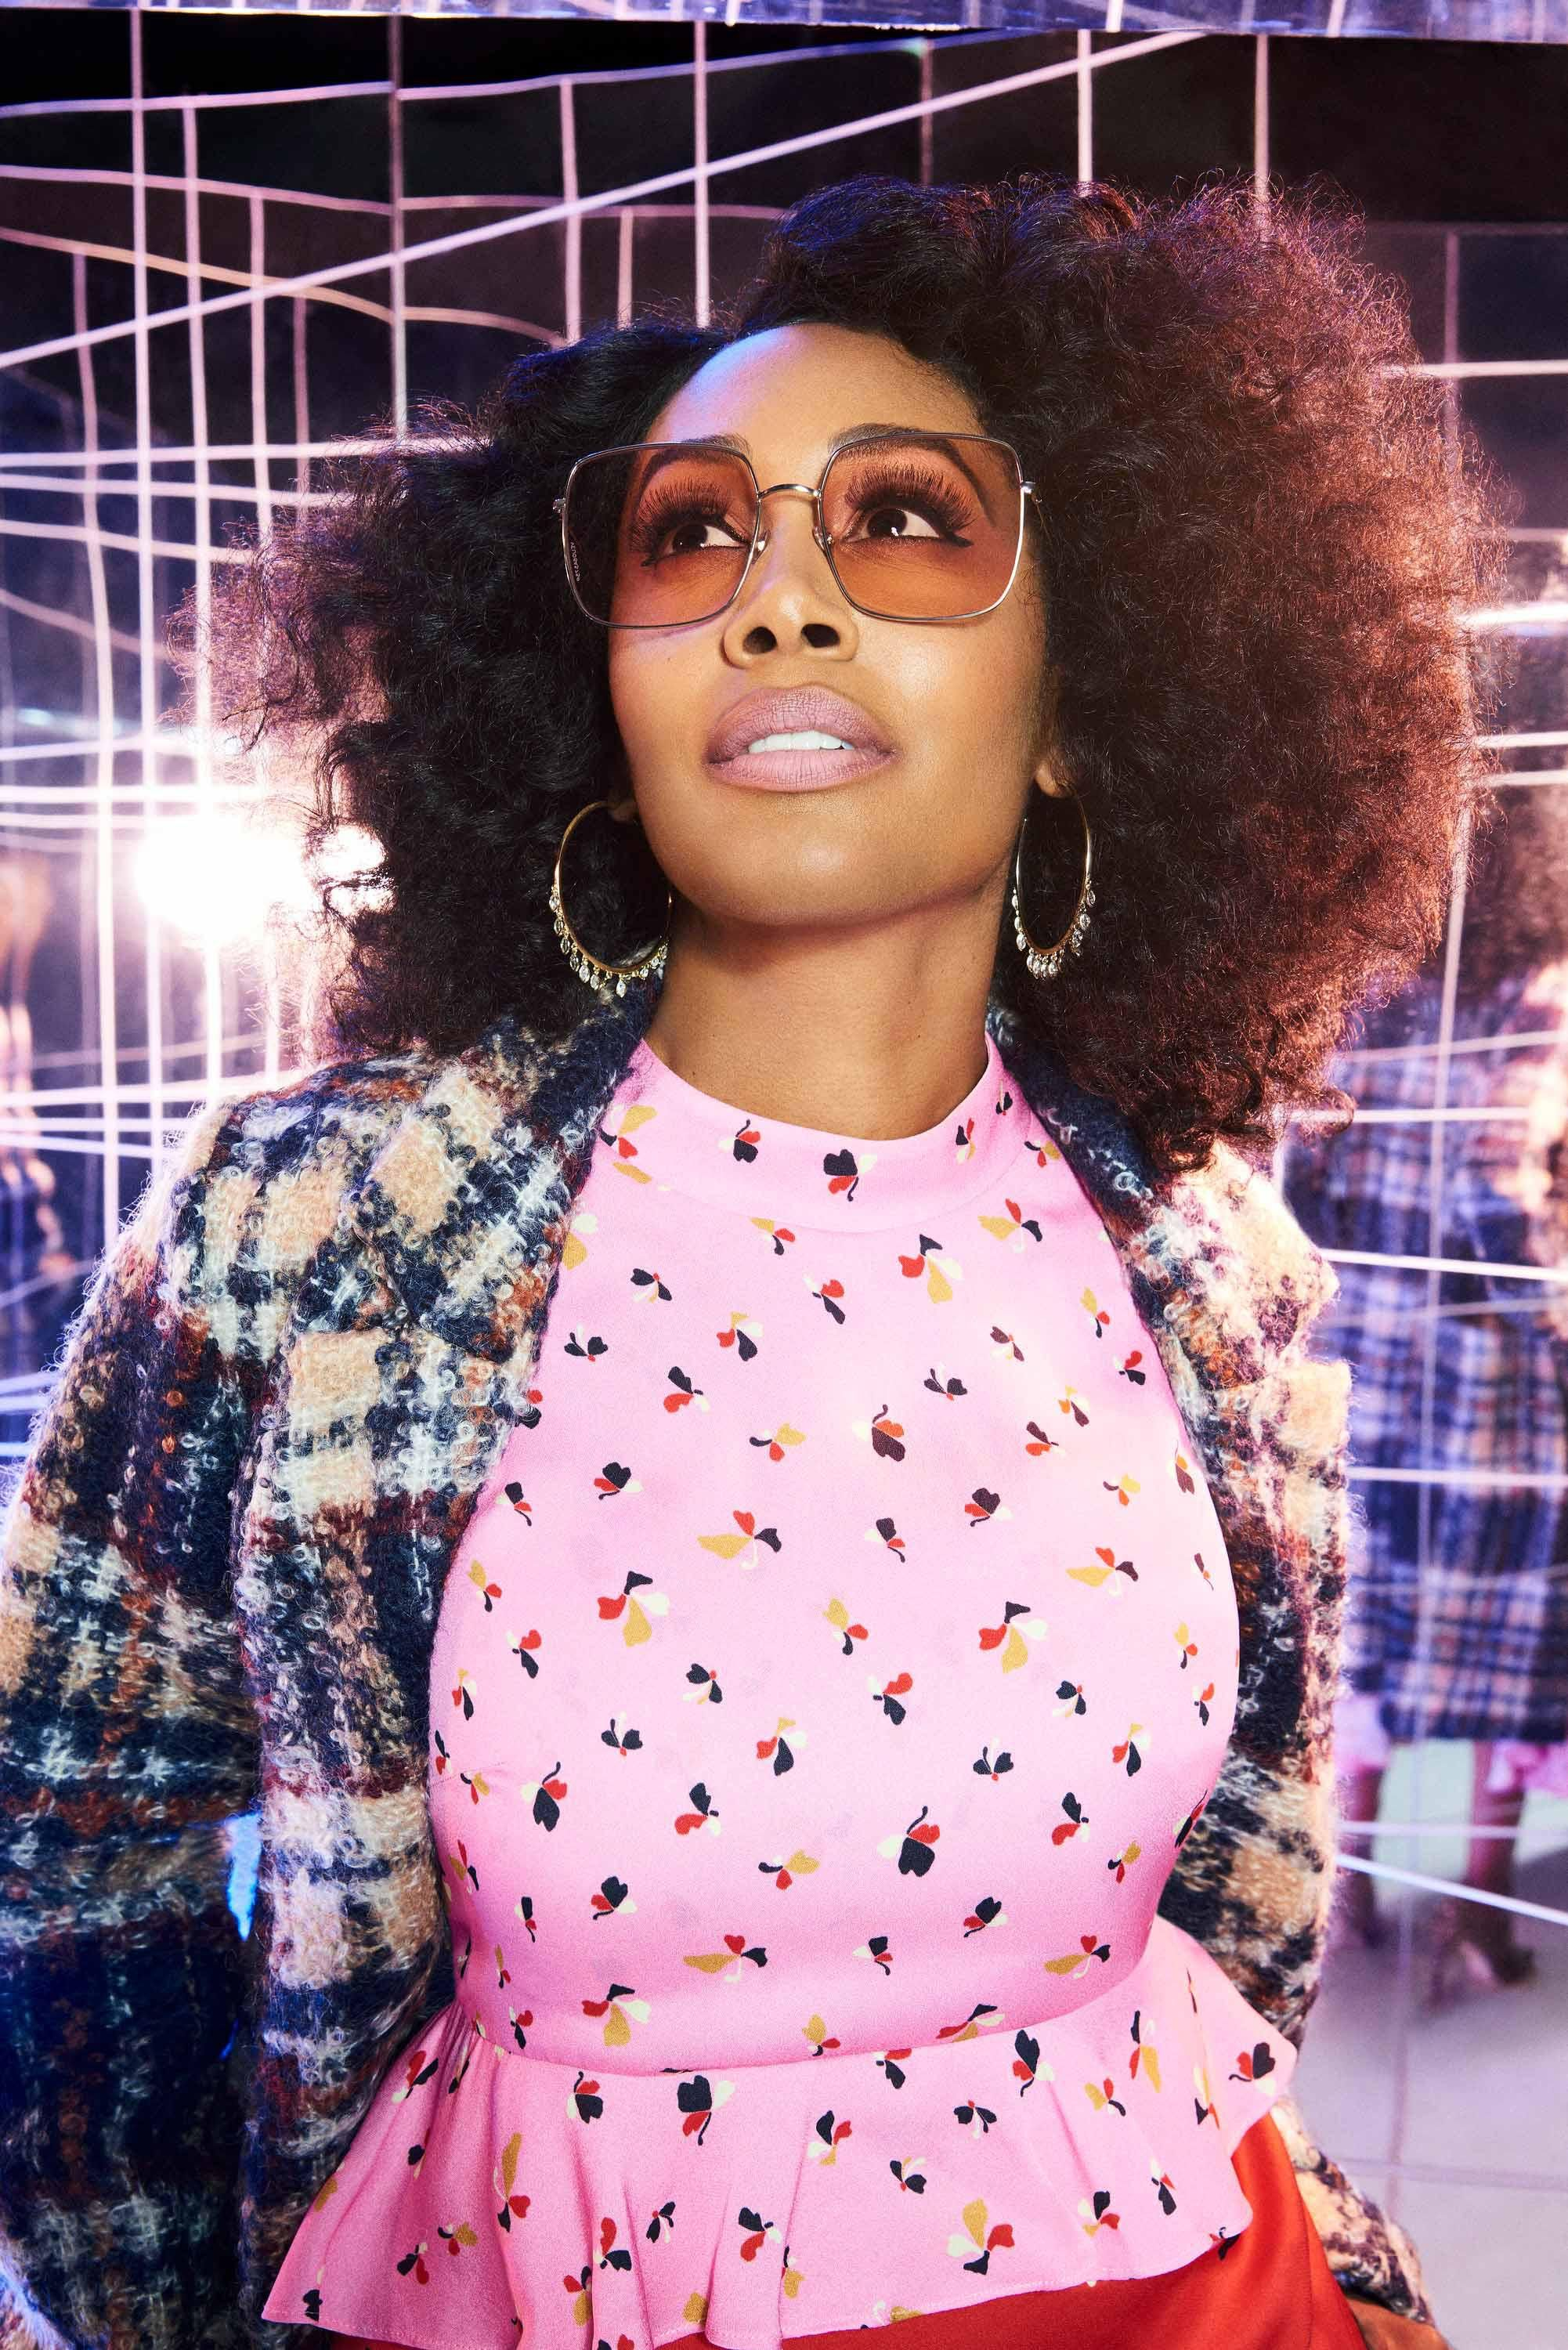 Simone Missick models oversize sunglasses and hoop earrings